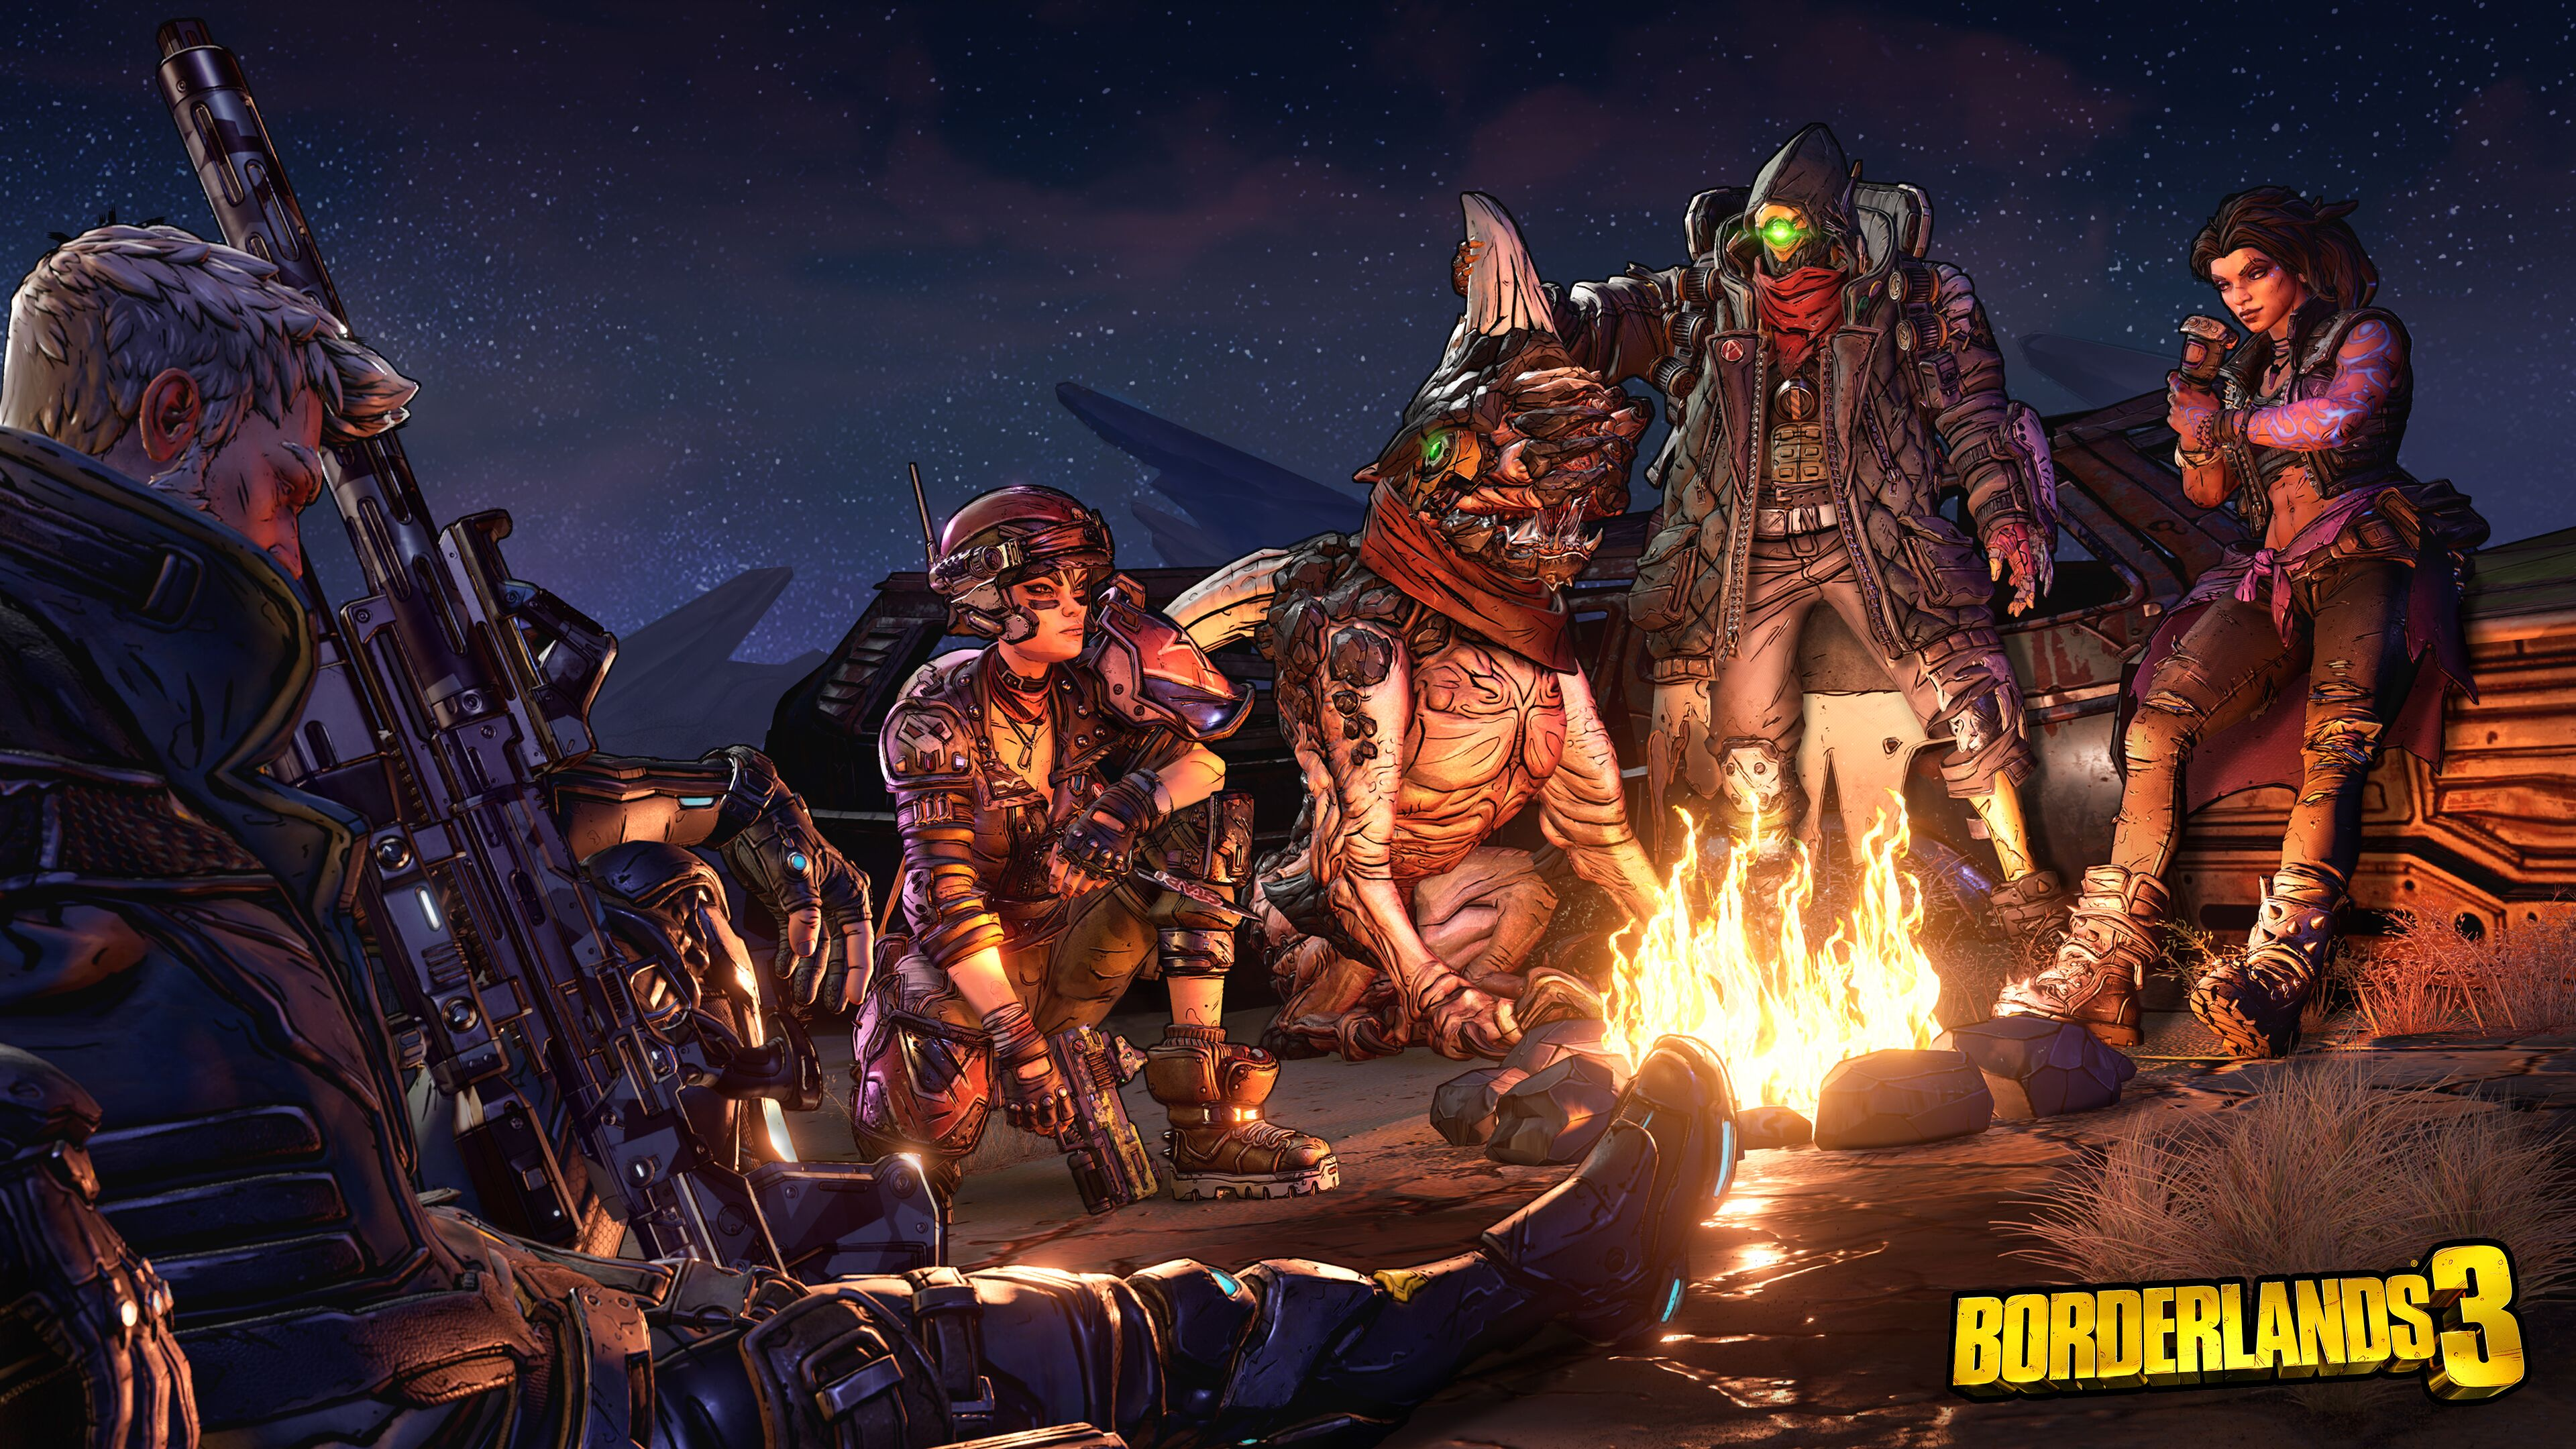 How Long is the Borderlands 3 Story Length